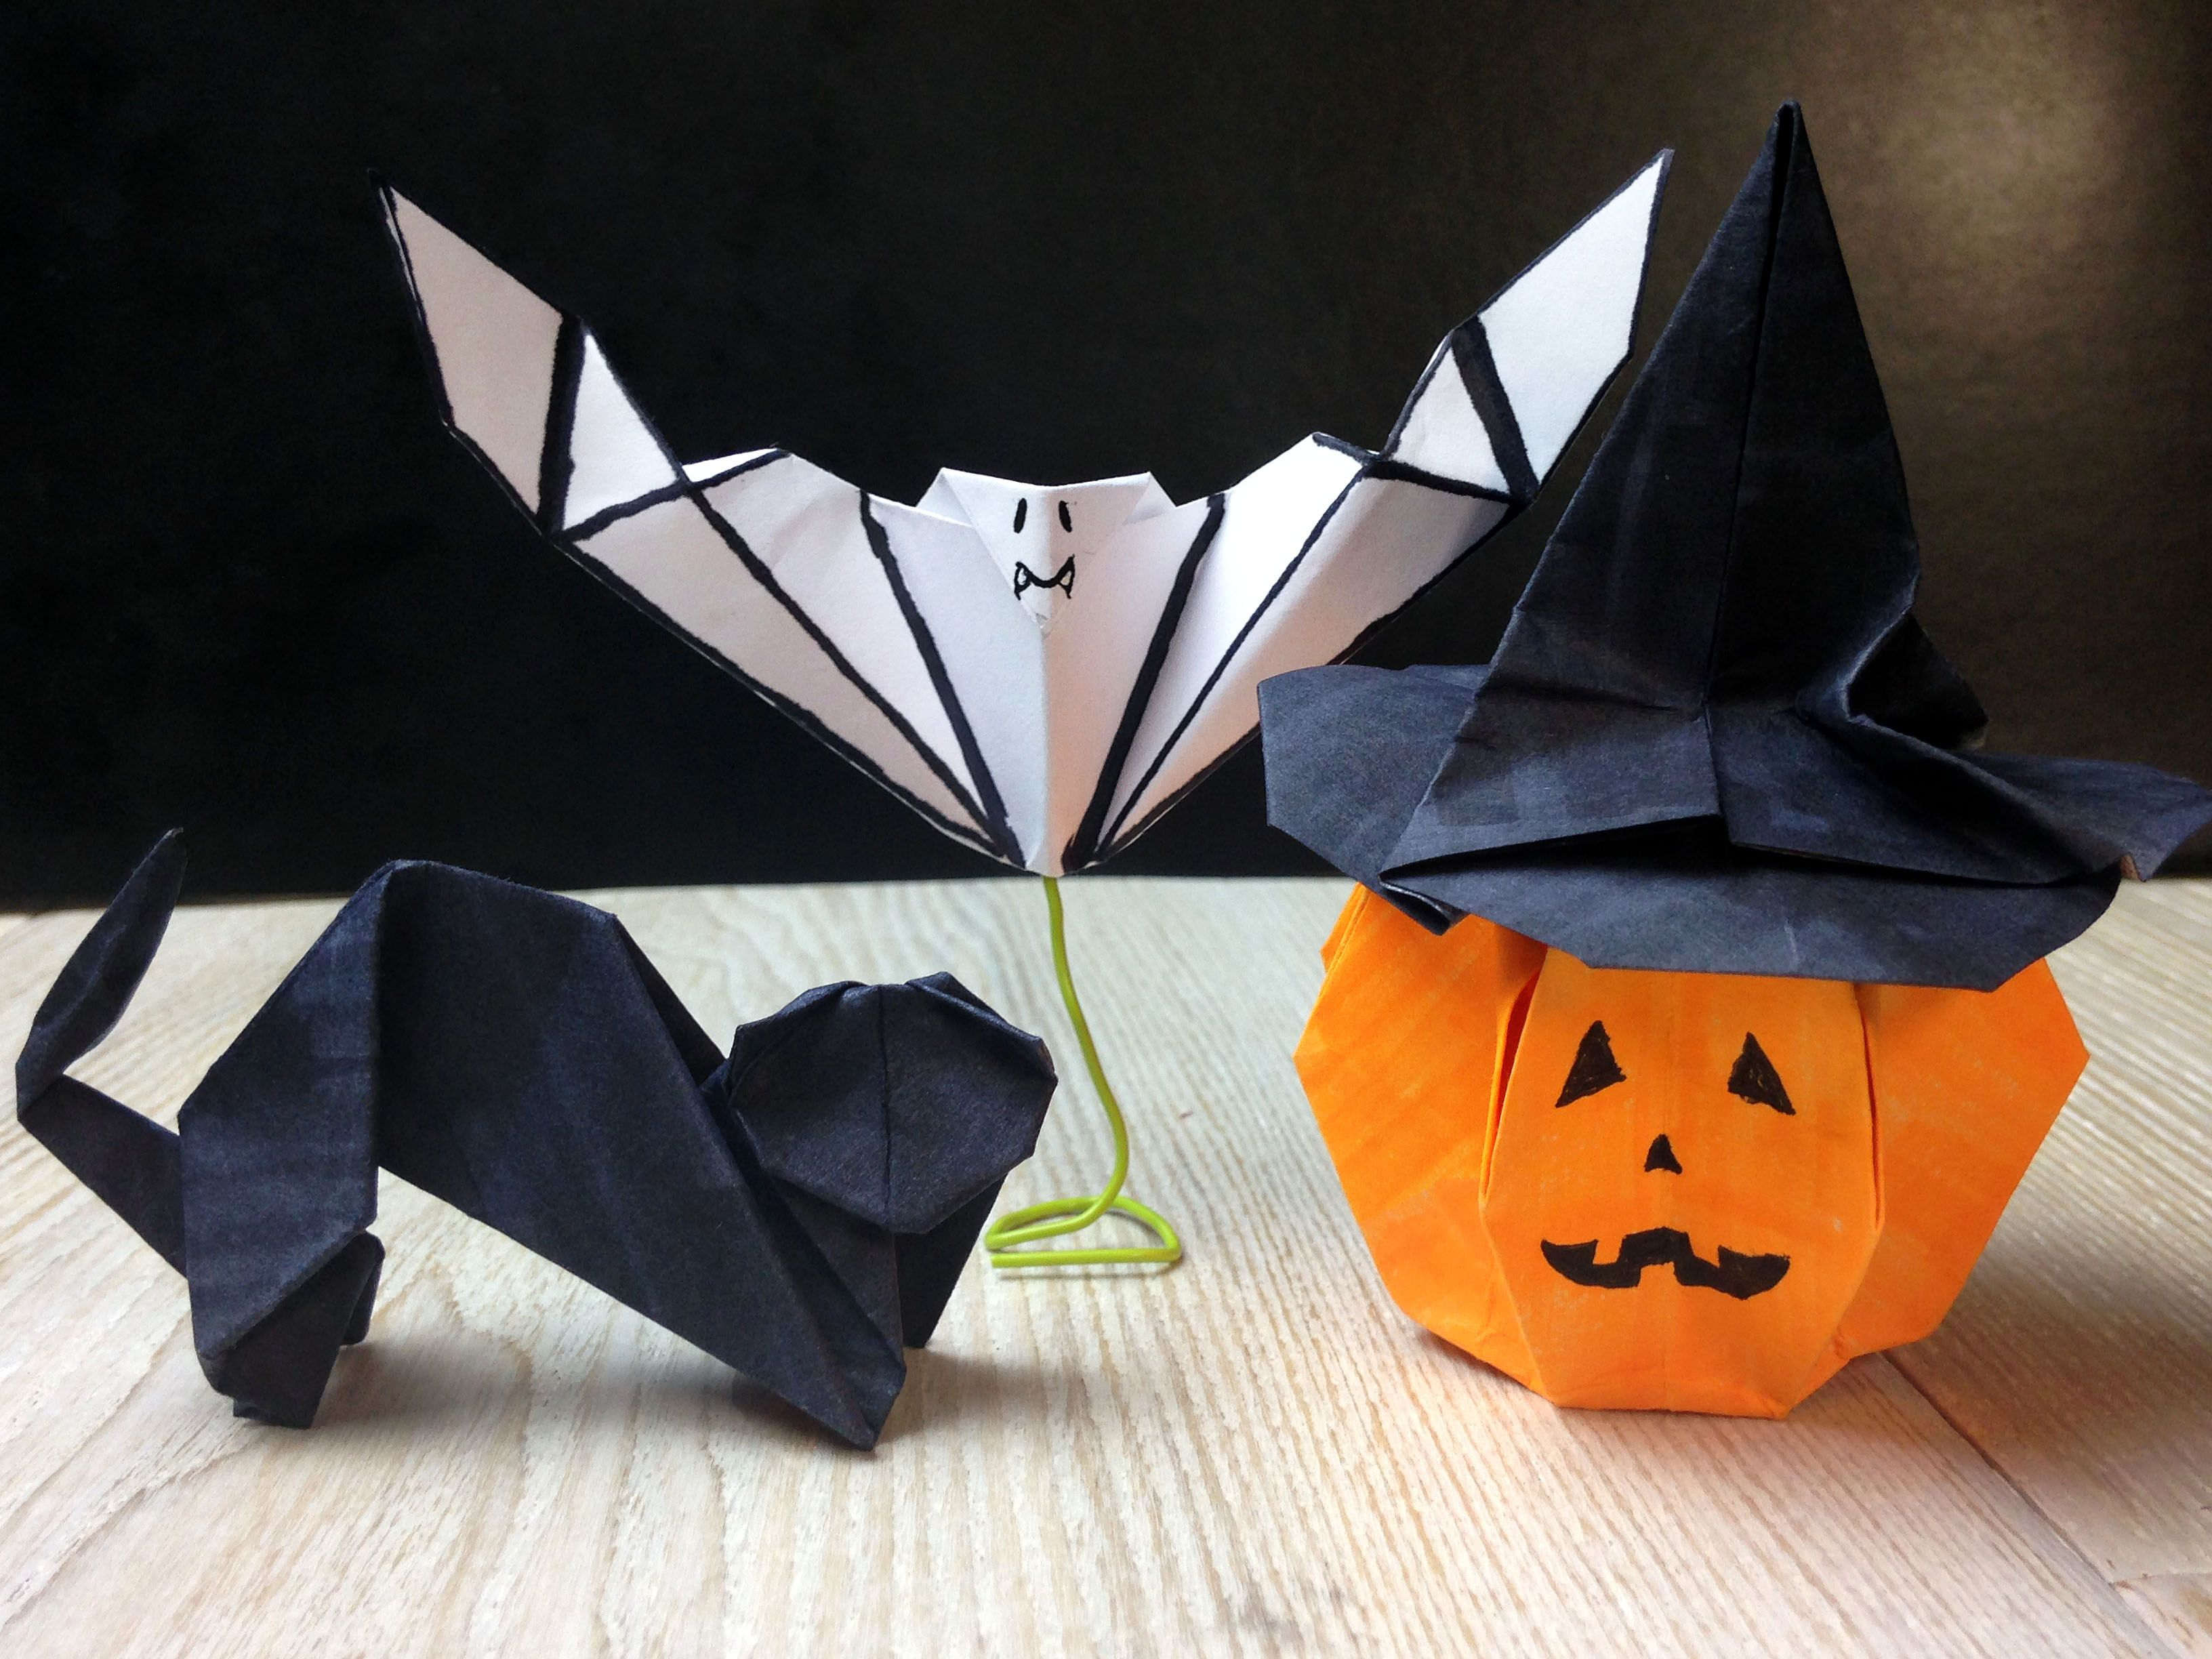 Halloween origami cat origami pumpkin origami witch hat origami halloween origami cat origami pumpkin origami witch hat origami and bat origami jeuxipadfo Gallery